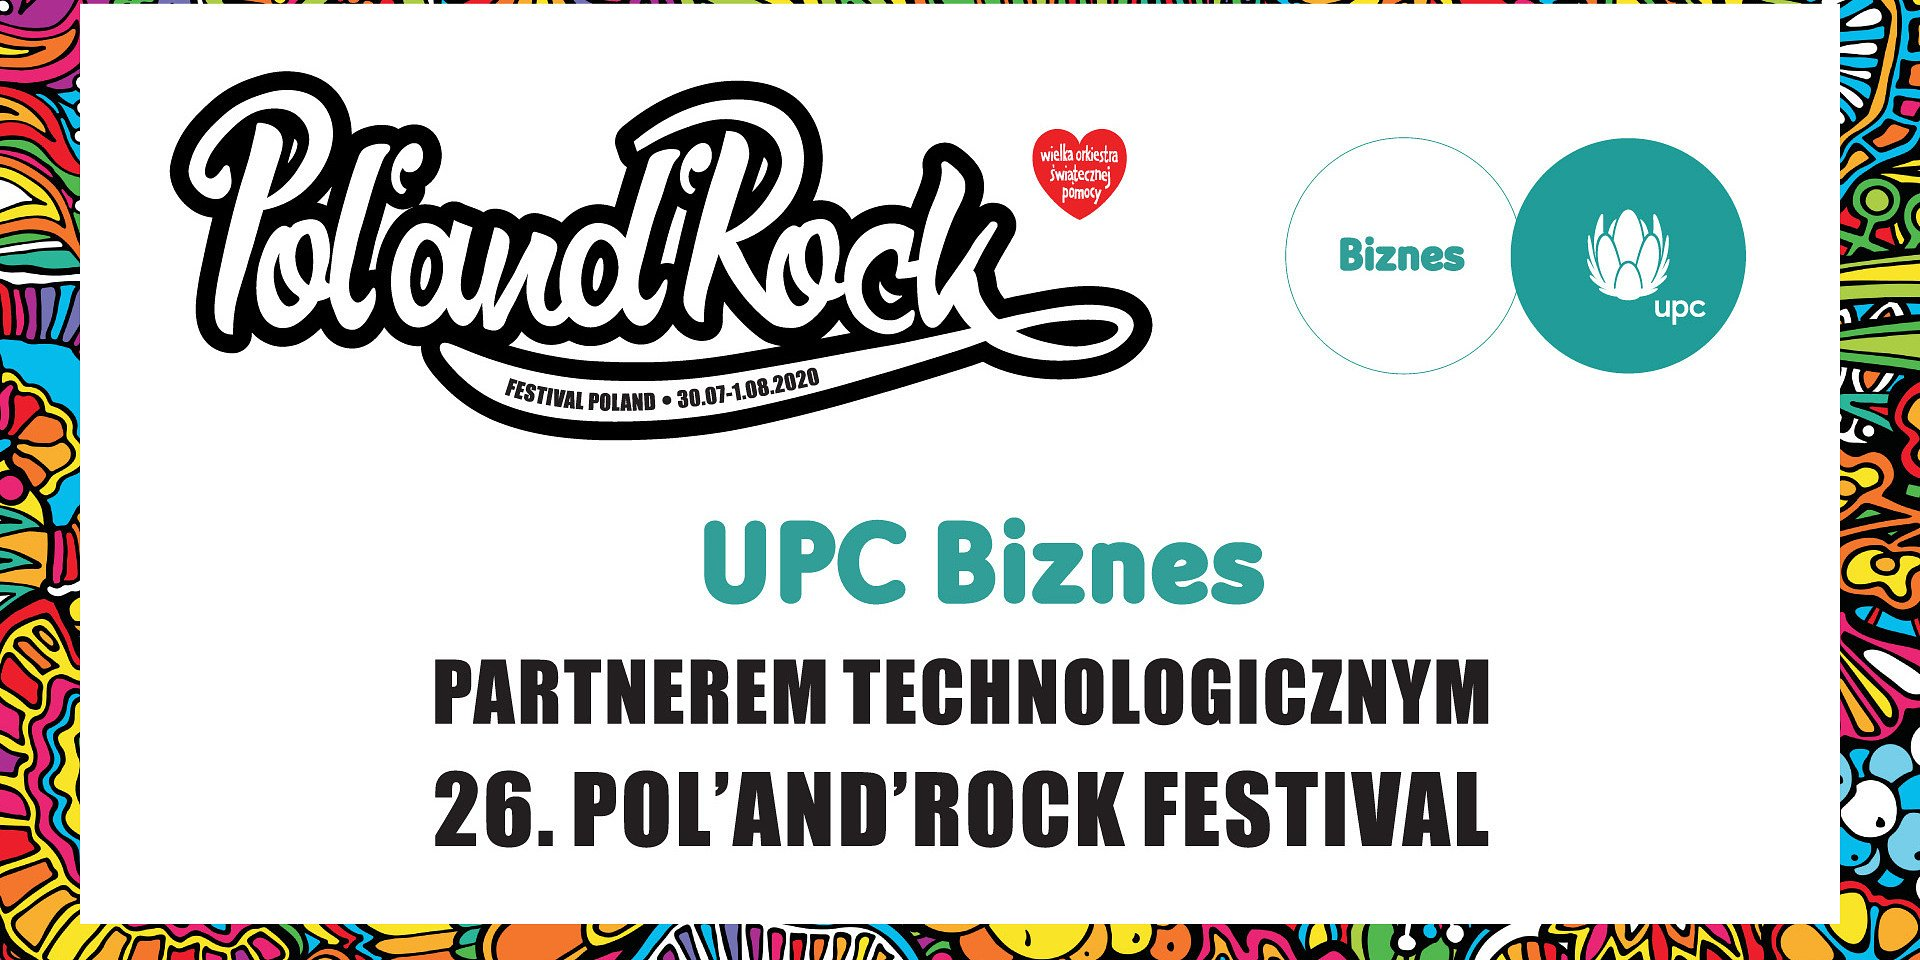 UPC Biznes partnerem technologicznym 26. Pol'and'Rock Festival